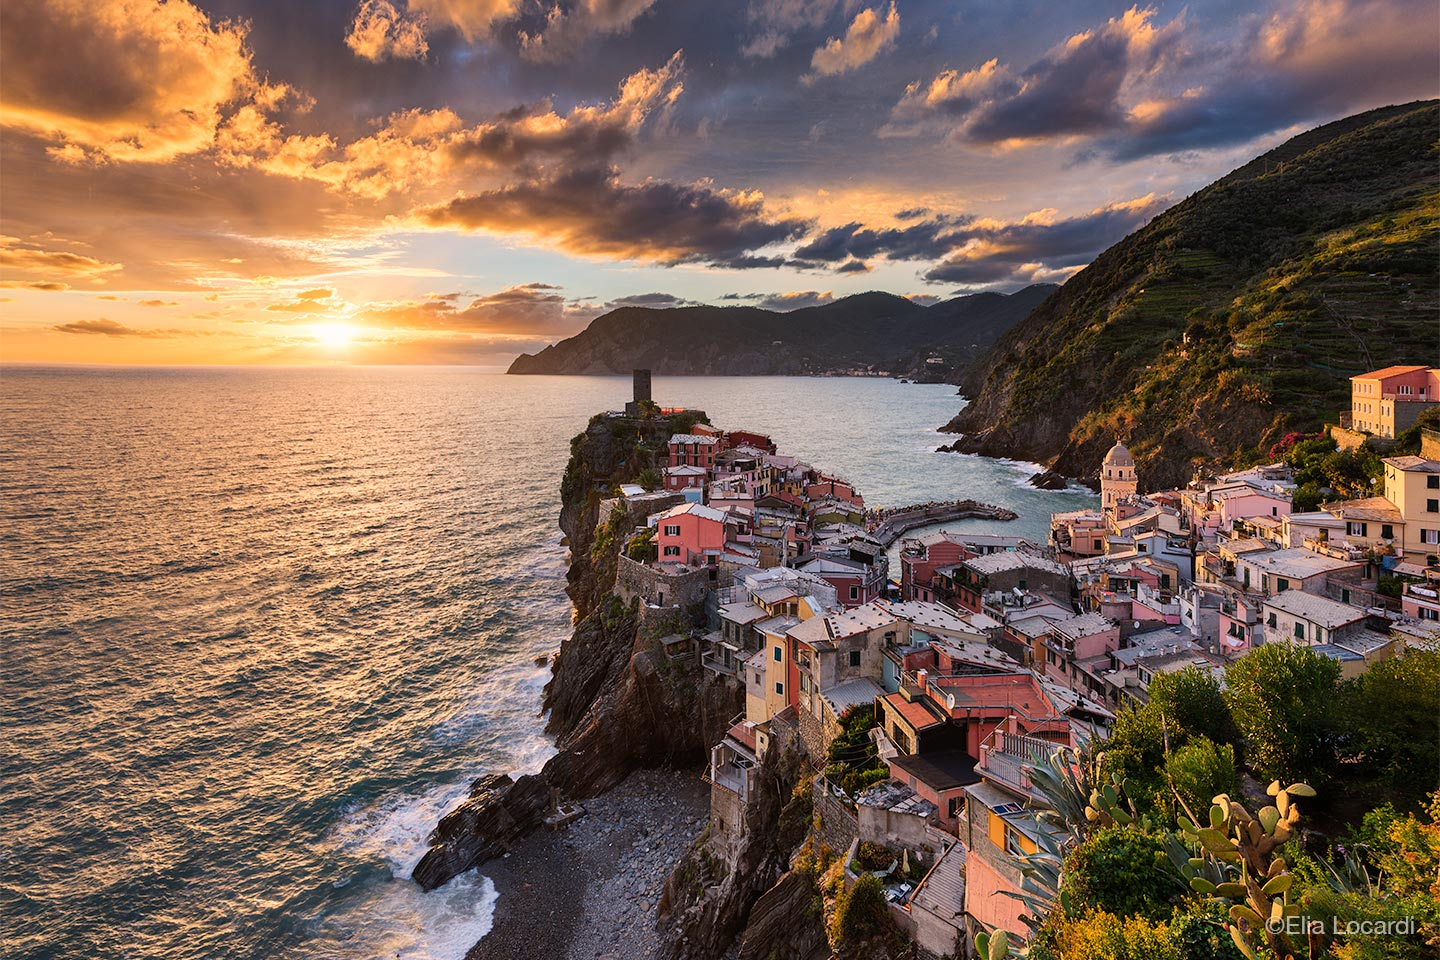 Photo-Tour-Leader-Elia-Locardi-Song-Of-The-Sea-Vernazza-Cinque-Terre-Italy